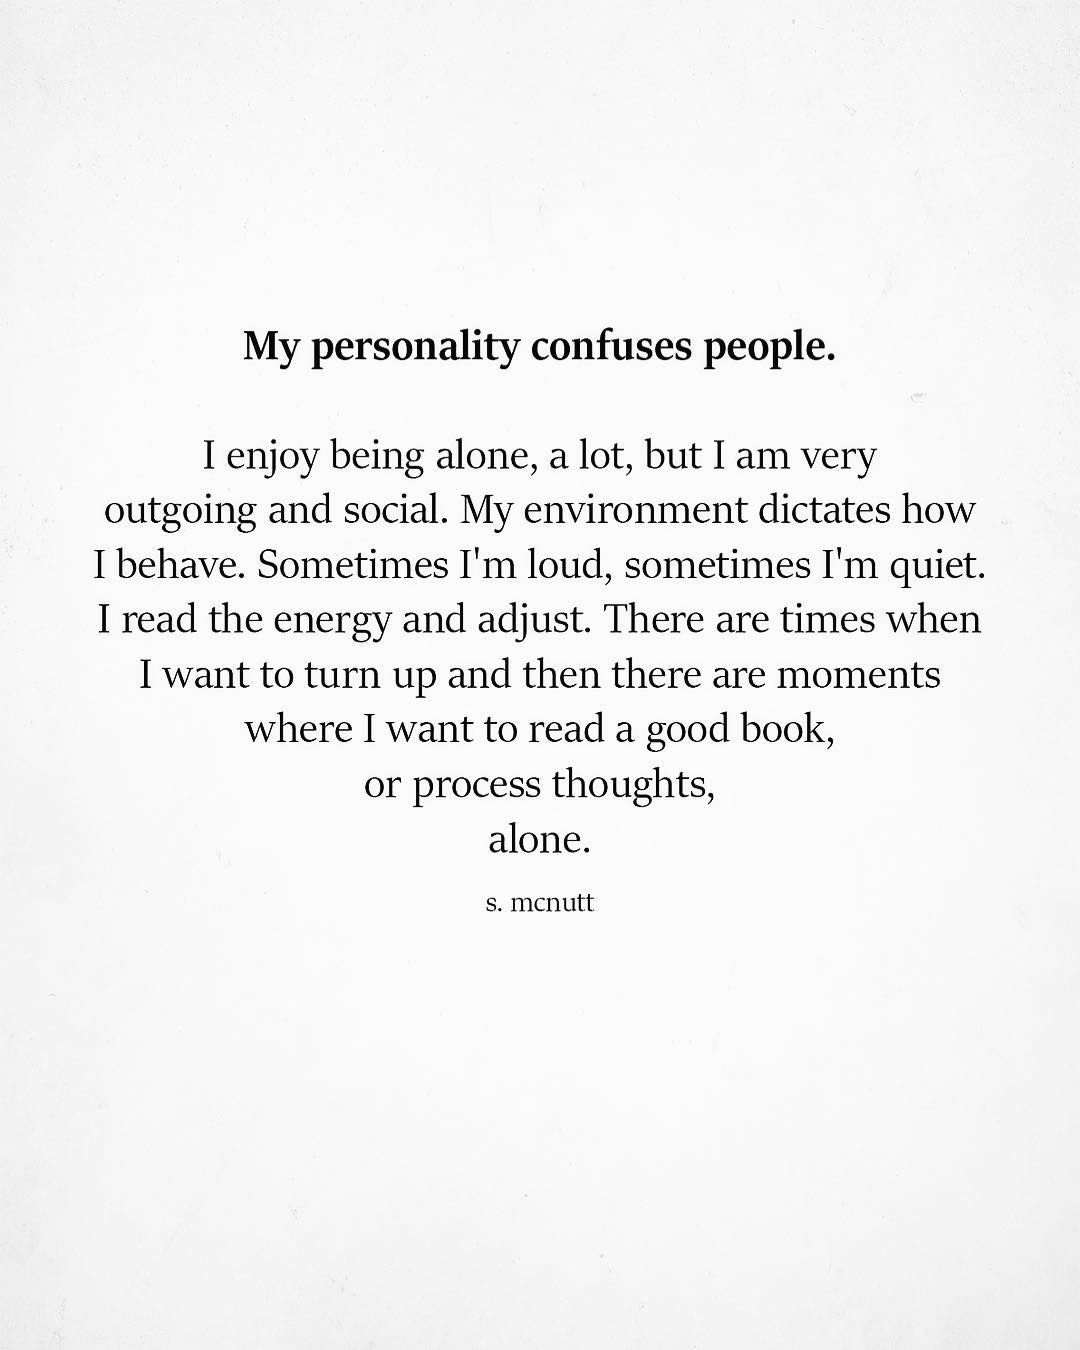 Pin by Vanessa ledin on random facts and quotes | Liking ...